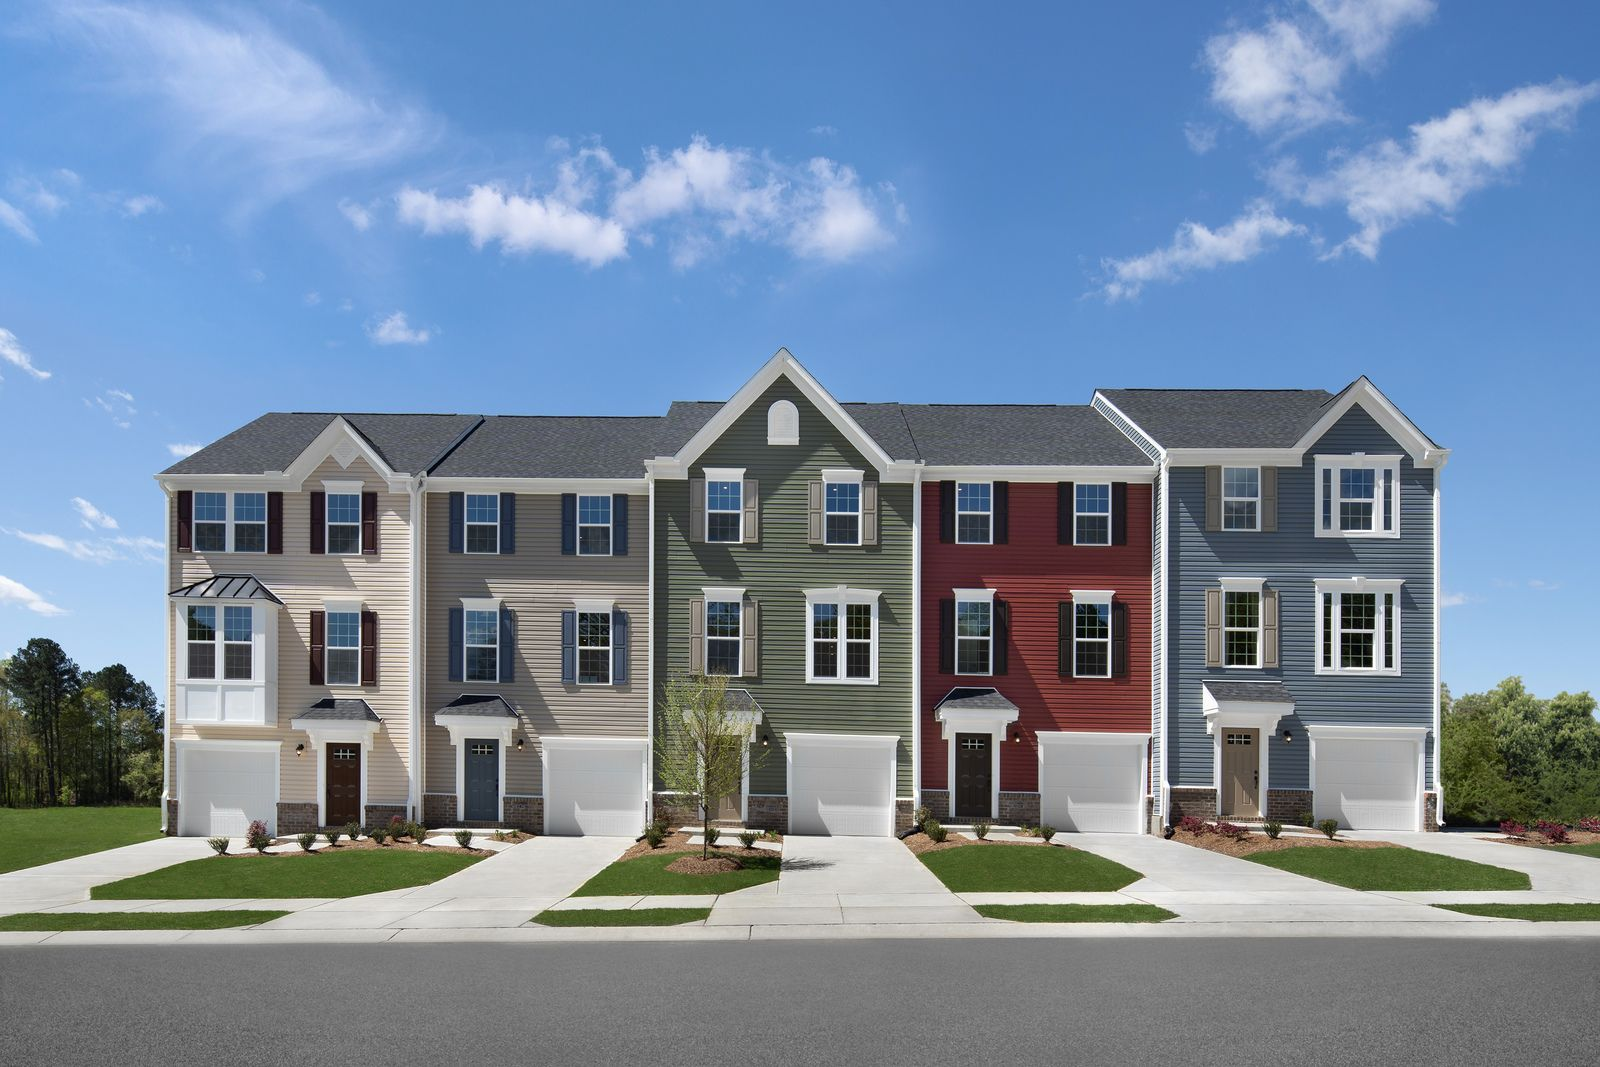 Affordable homes with private yards walkable to shopping and dining